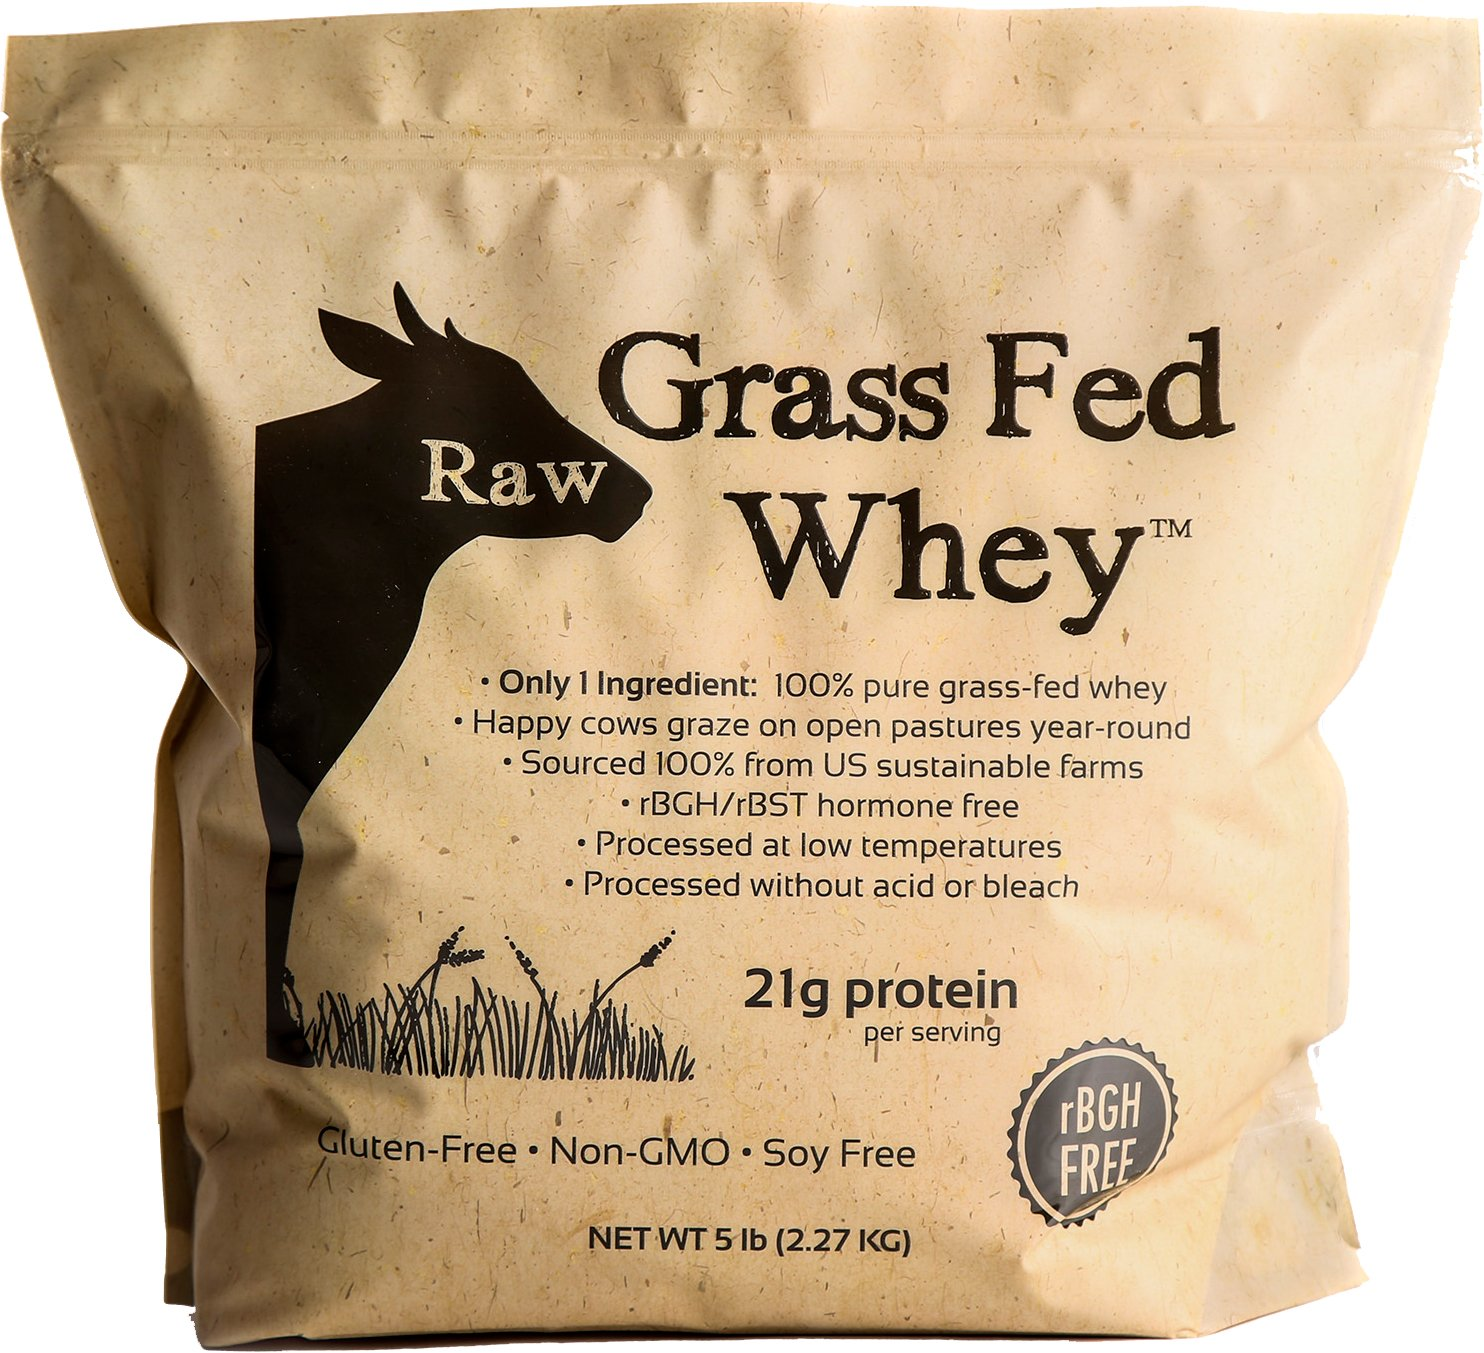 Raw Grass Fed Whey 5LB - Happy Healthy Cows, COLD PROCESSED Undenatured 100% Grass Fed Whey Protein Powder, GMO-Free + rBGH Free + Soy Free + Gluten Free, Unflavored, Unsweetened (5 LB BULK, 90 Serve) by Raw Organic Whey